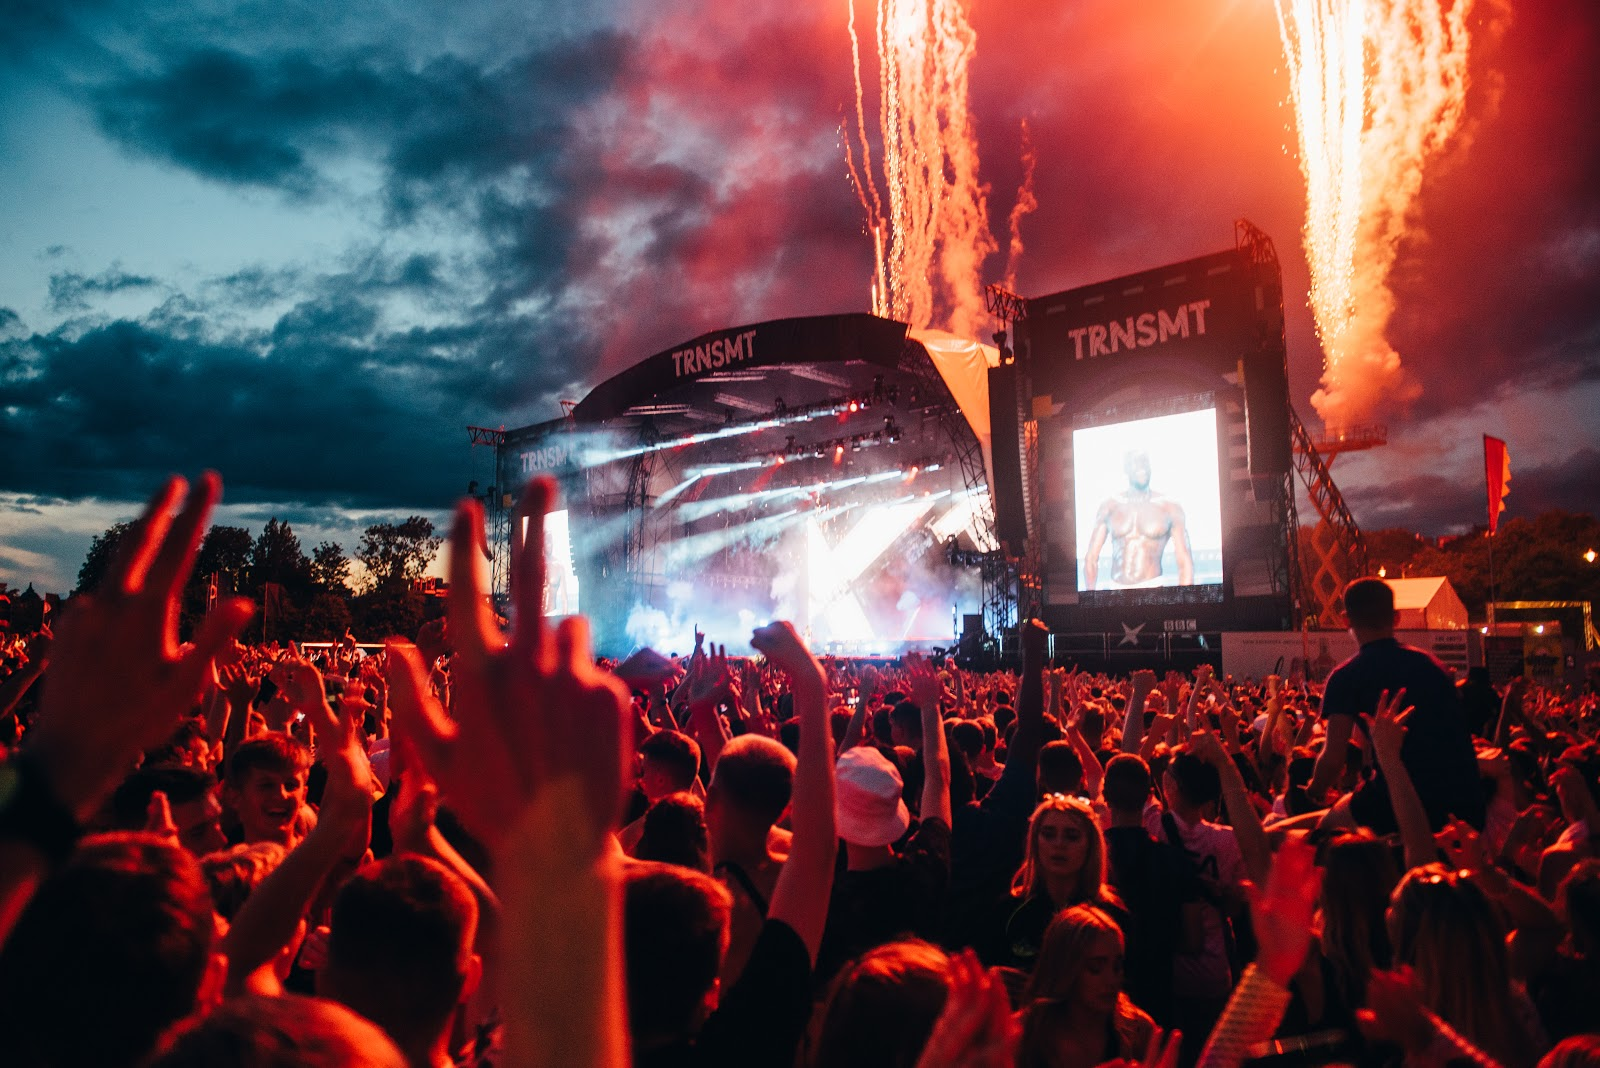 Courteeners, Liam Gallagher and Lewis Capaldi to headline TRNSMT 2020